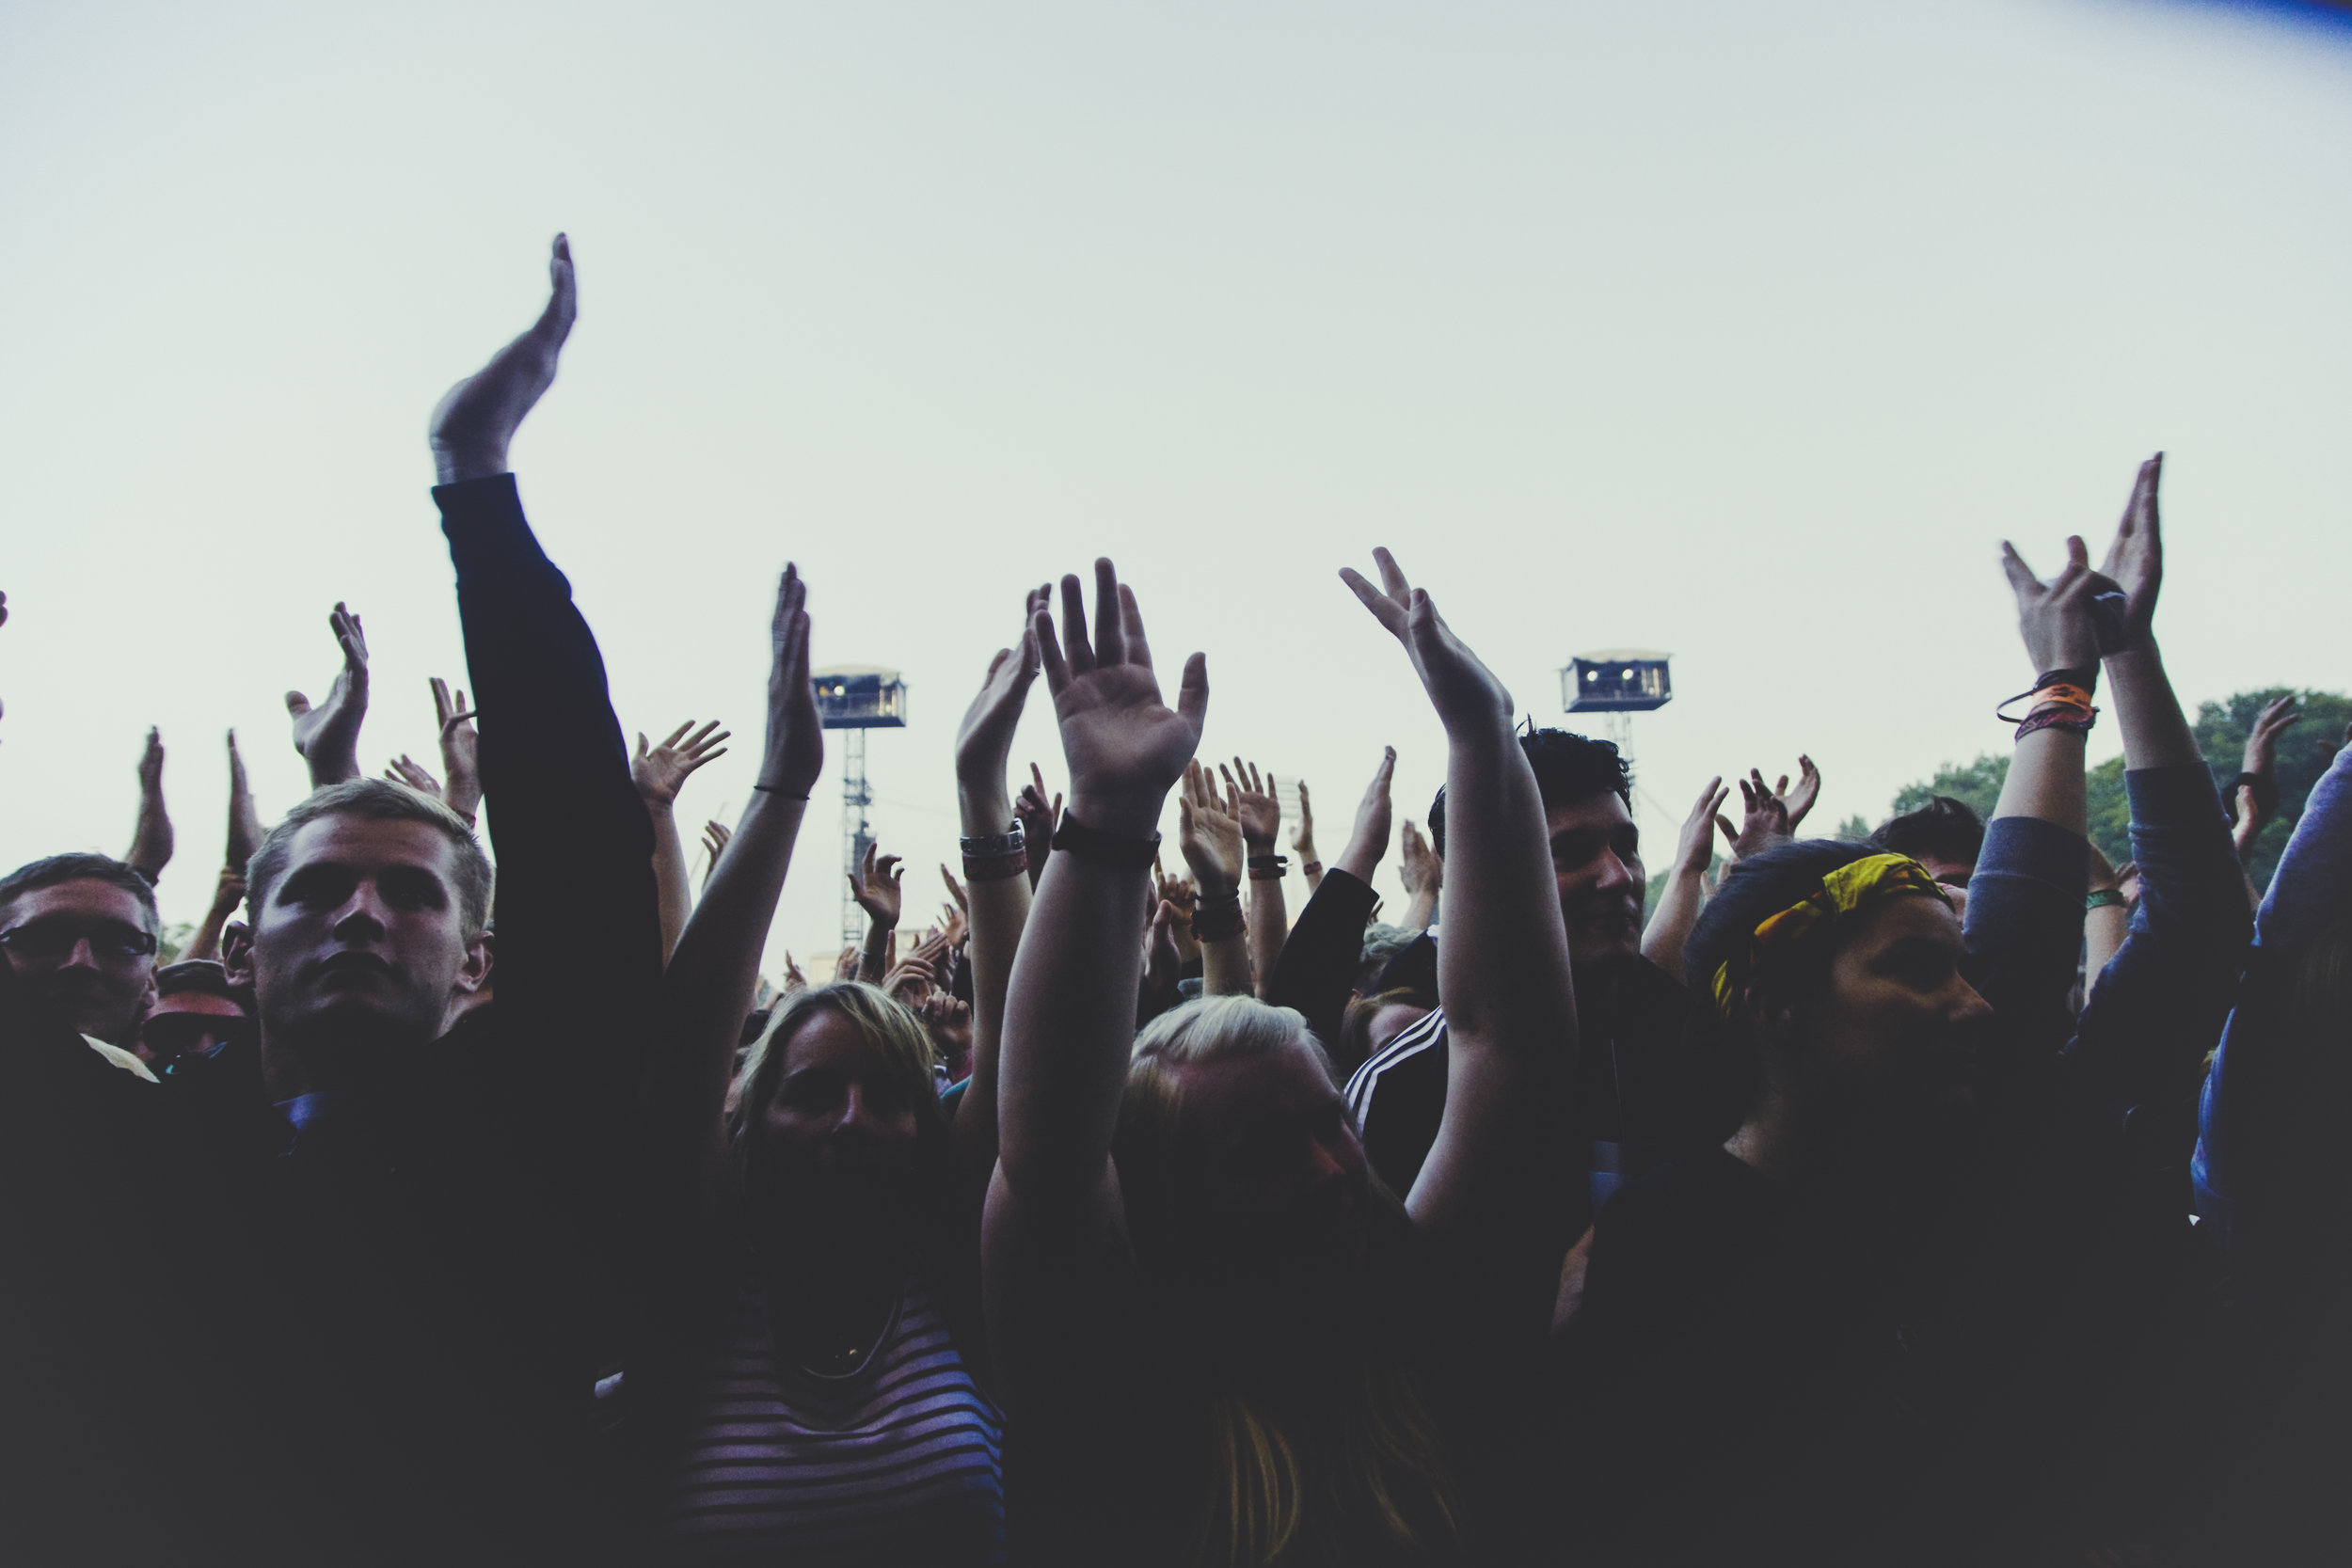 boss-fight-free-high-quality-stock-images-photos-photography-crowd-music-concert.jpg